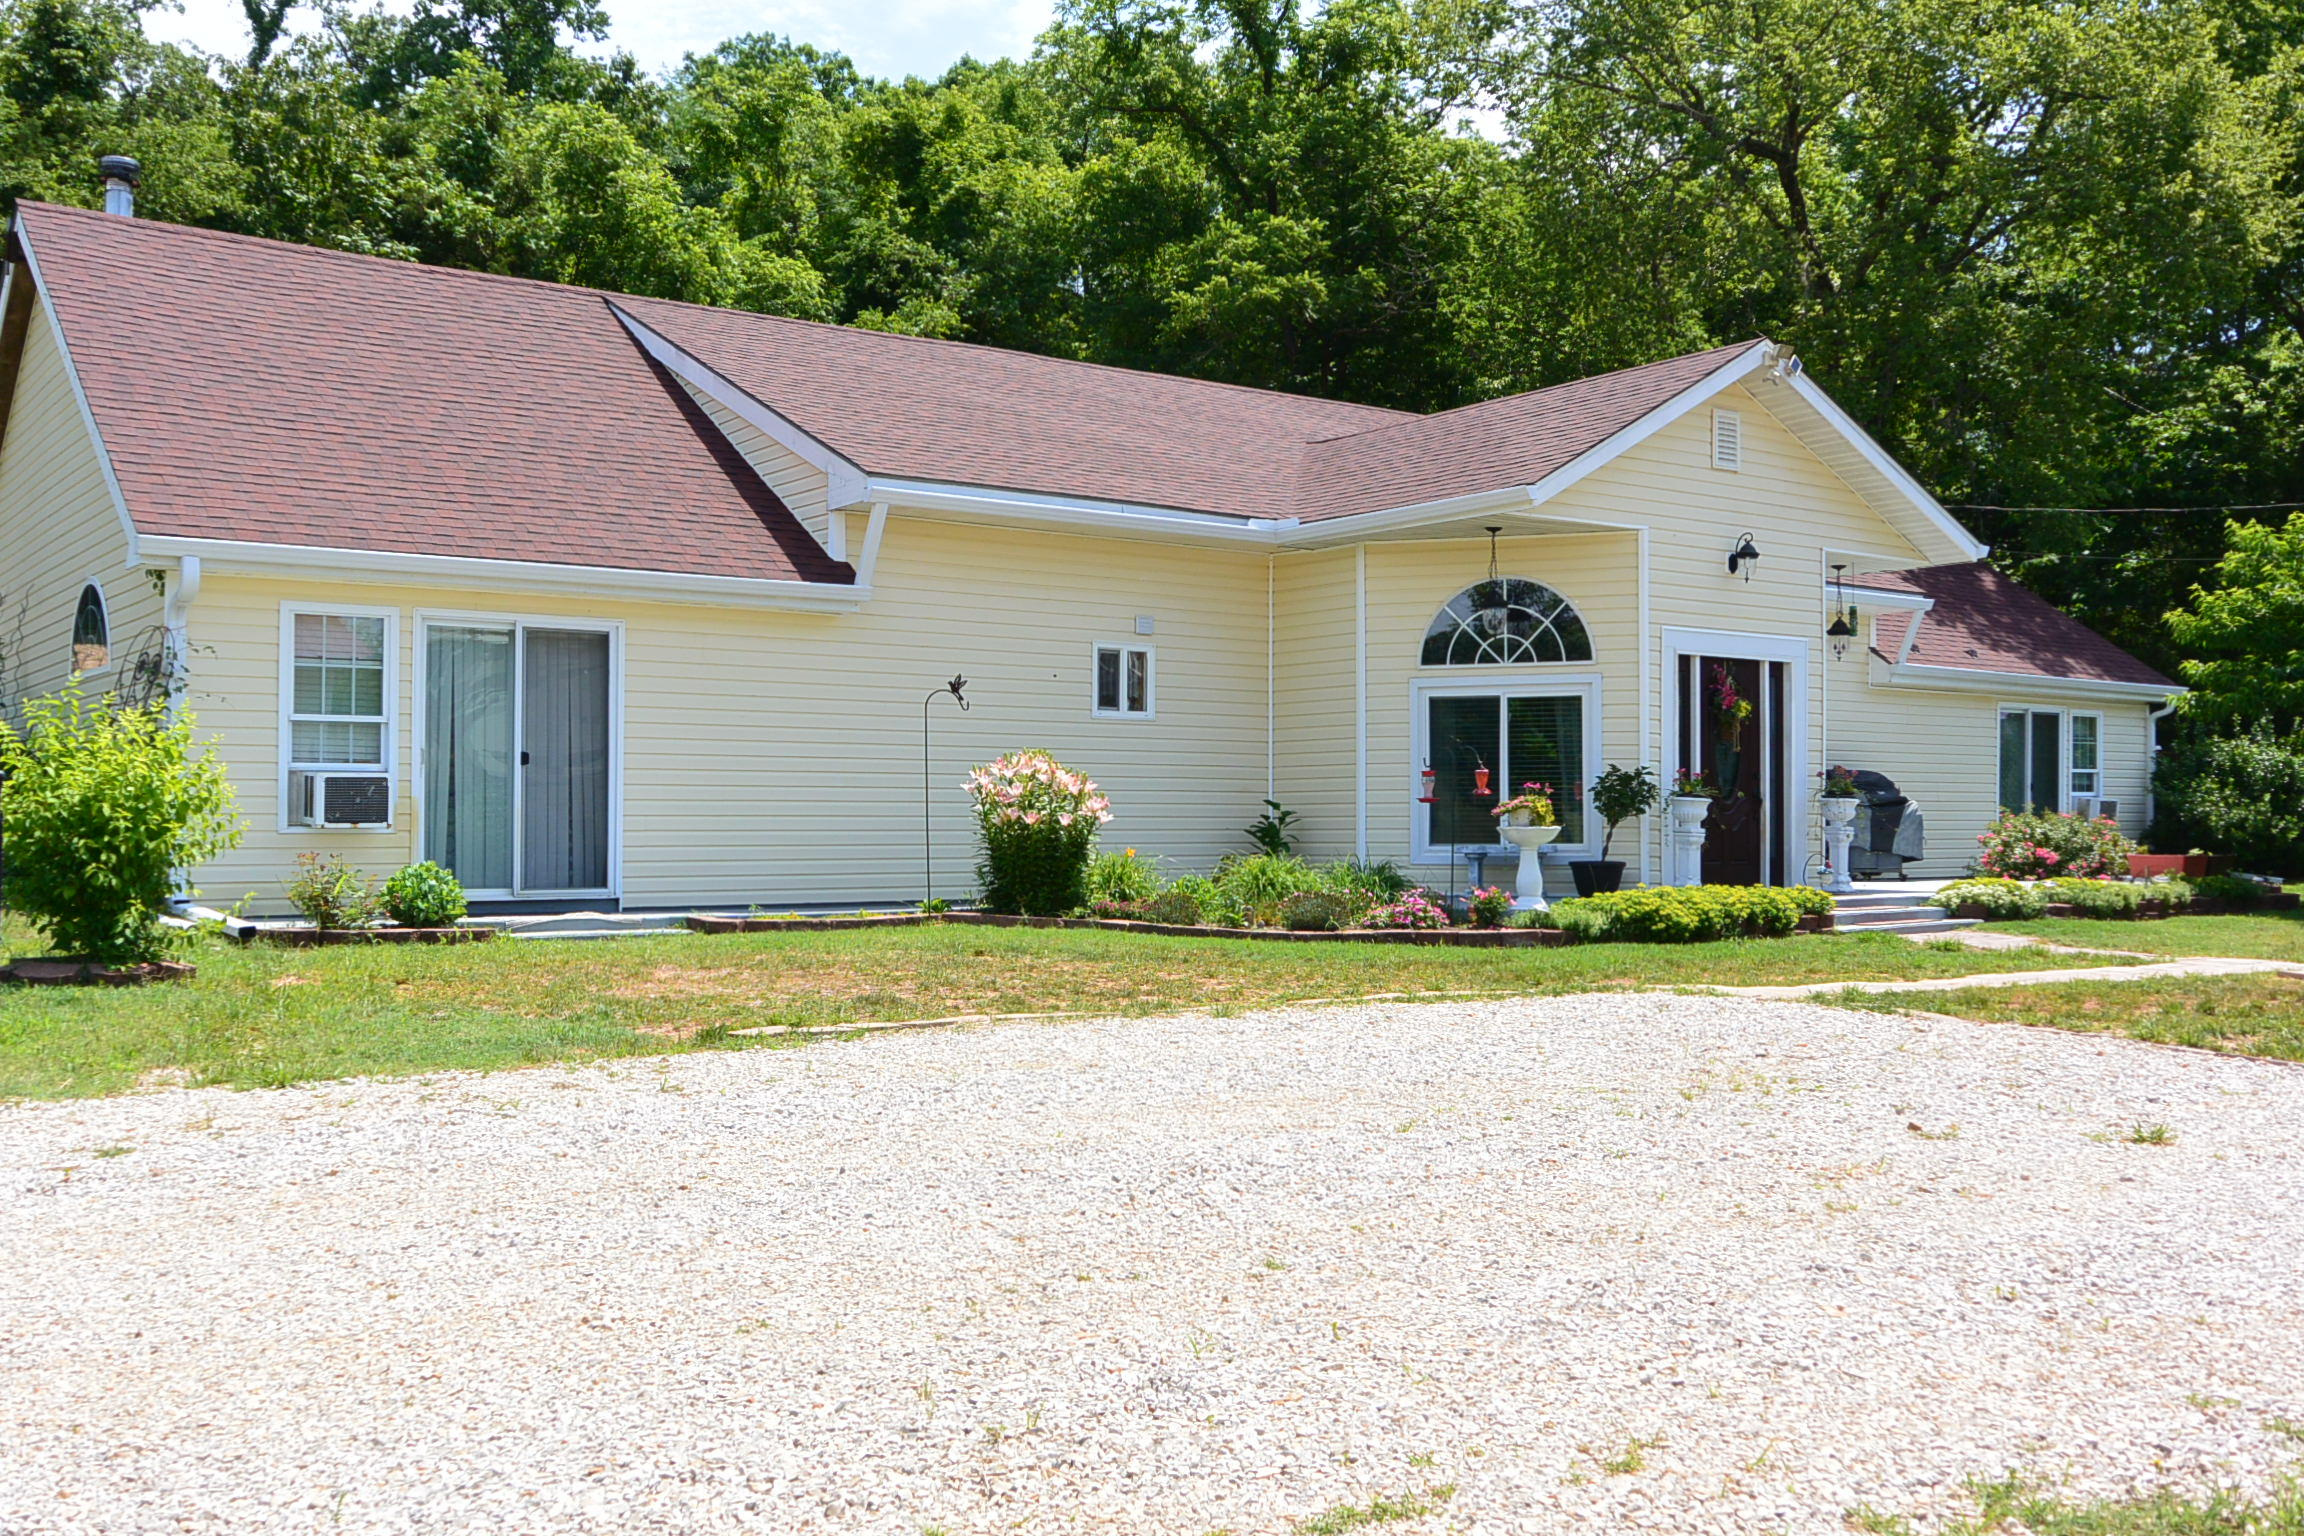 23420 Us Highway 160 Kissee Mills, MO 65680